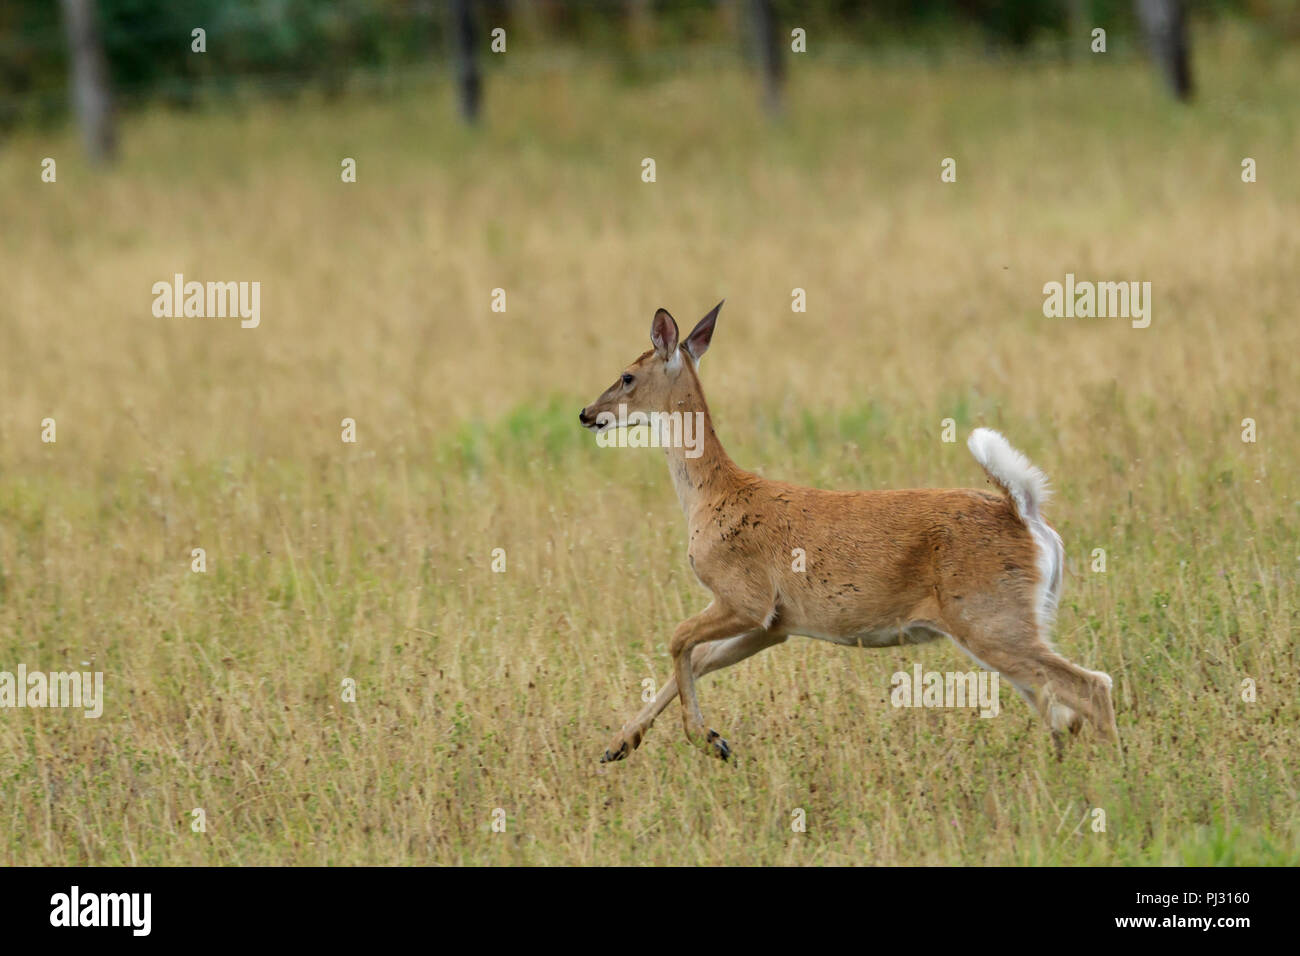 A white tailed deer runs in a field near Hauser, Idaho. - Stock Image